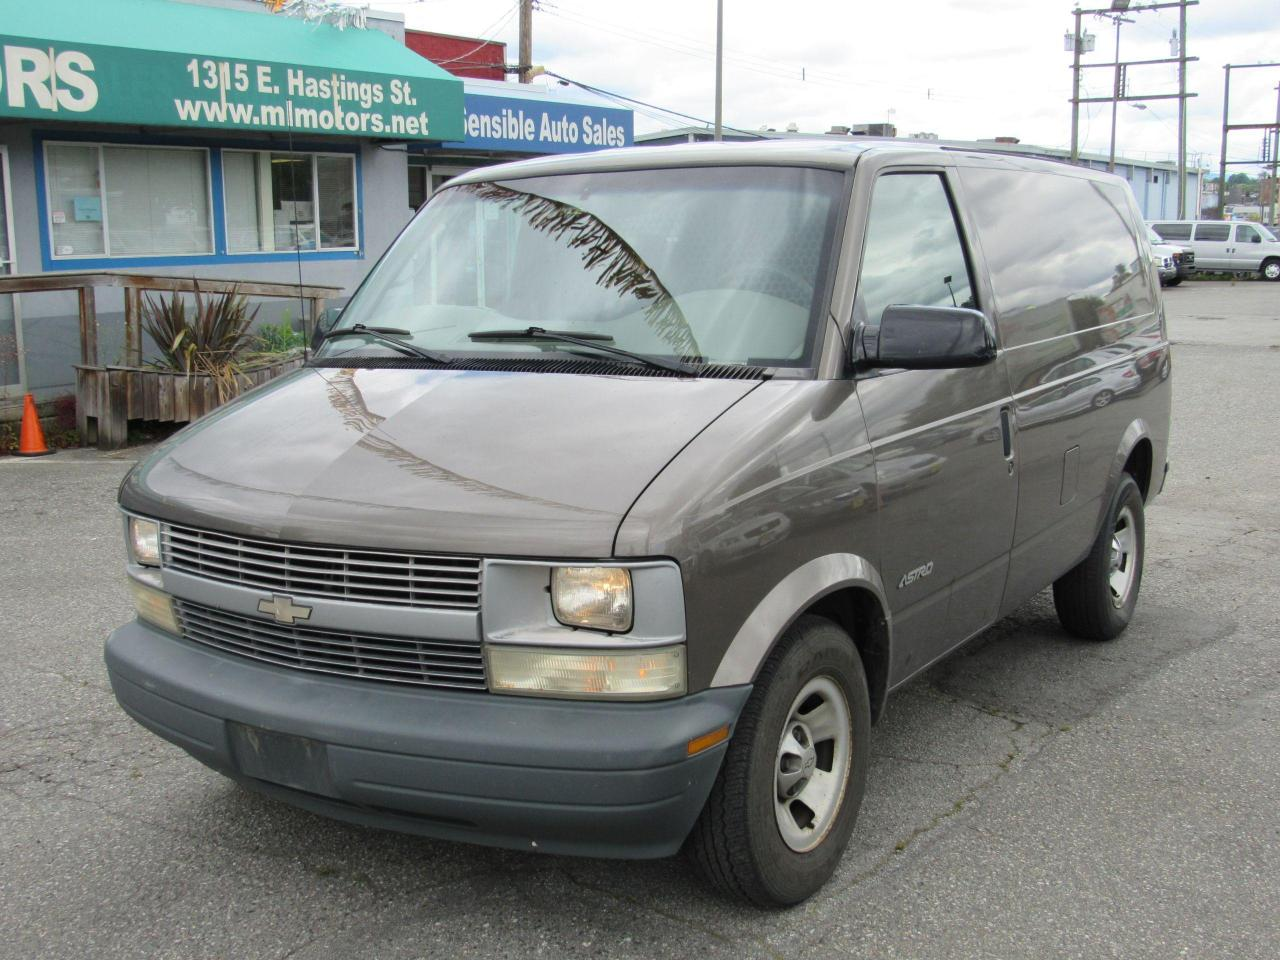 used 2002 chevrolet astro van for sale in vancouver, british columbia carpages.ca